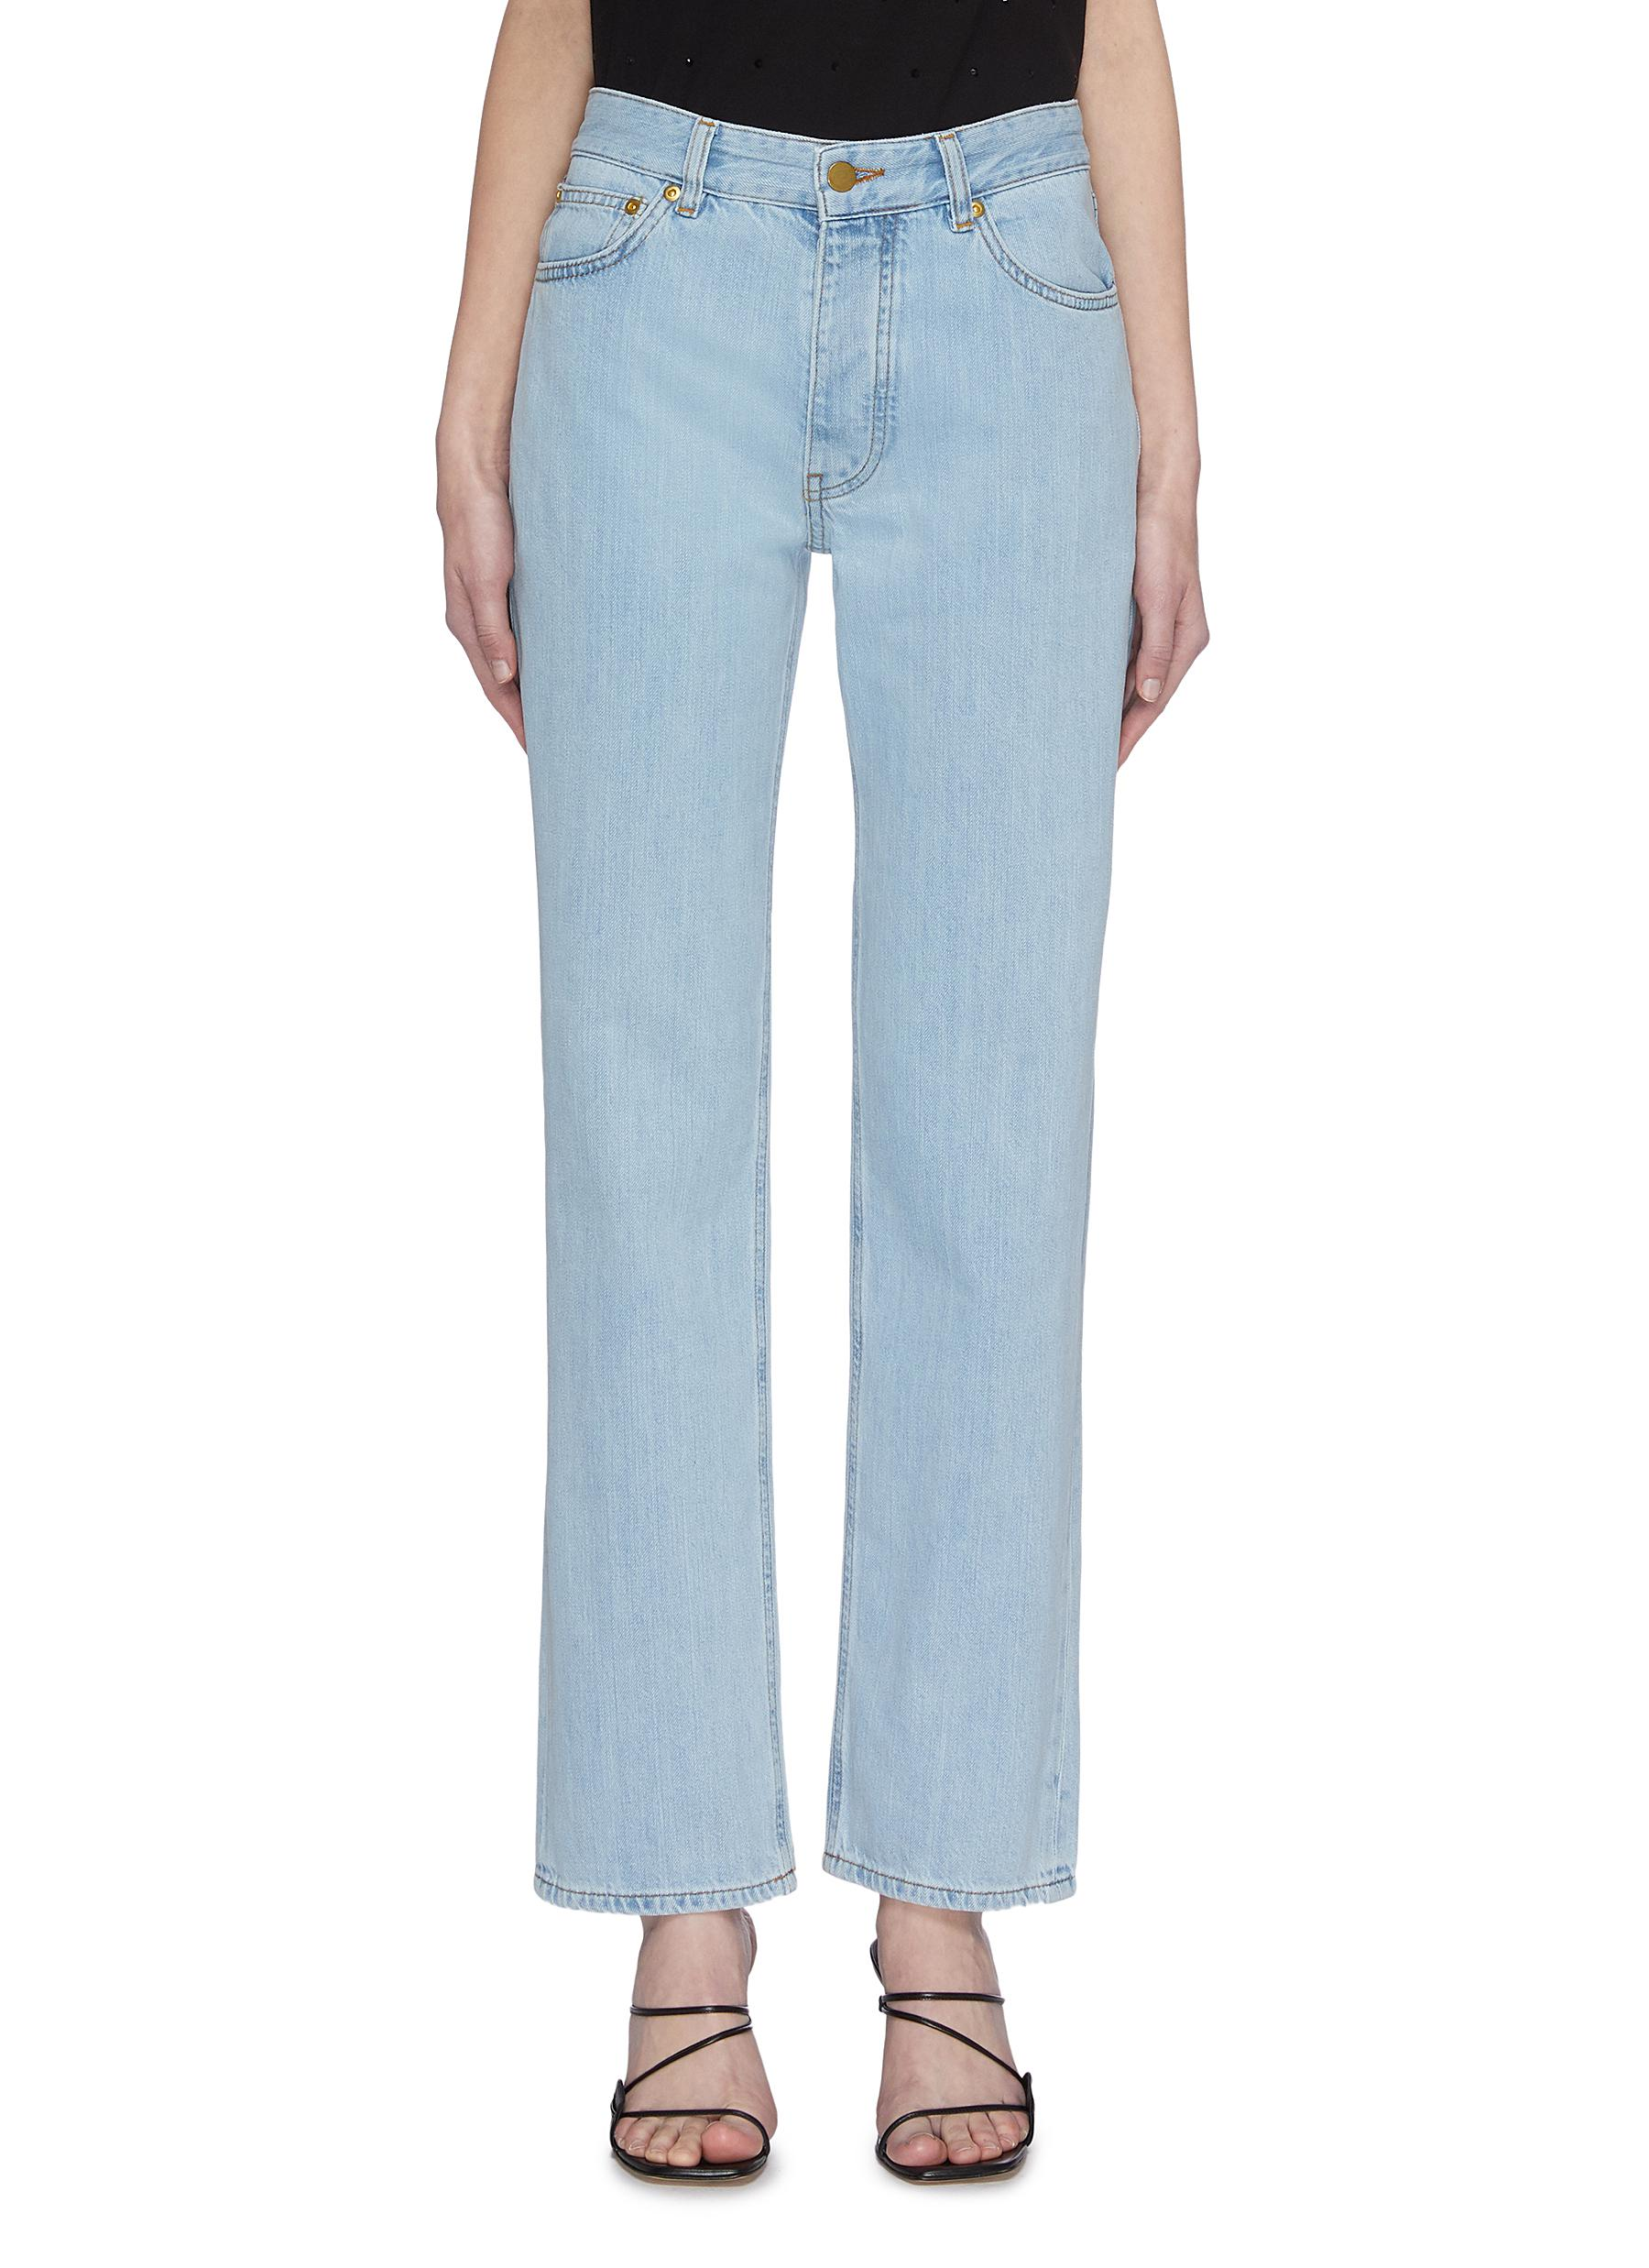 Buy Victoria, Victoria Beckham Jeans 'Arizona' logo embroidered boyfriend jeans